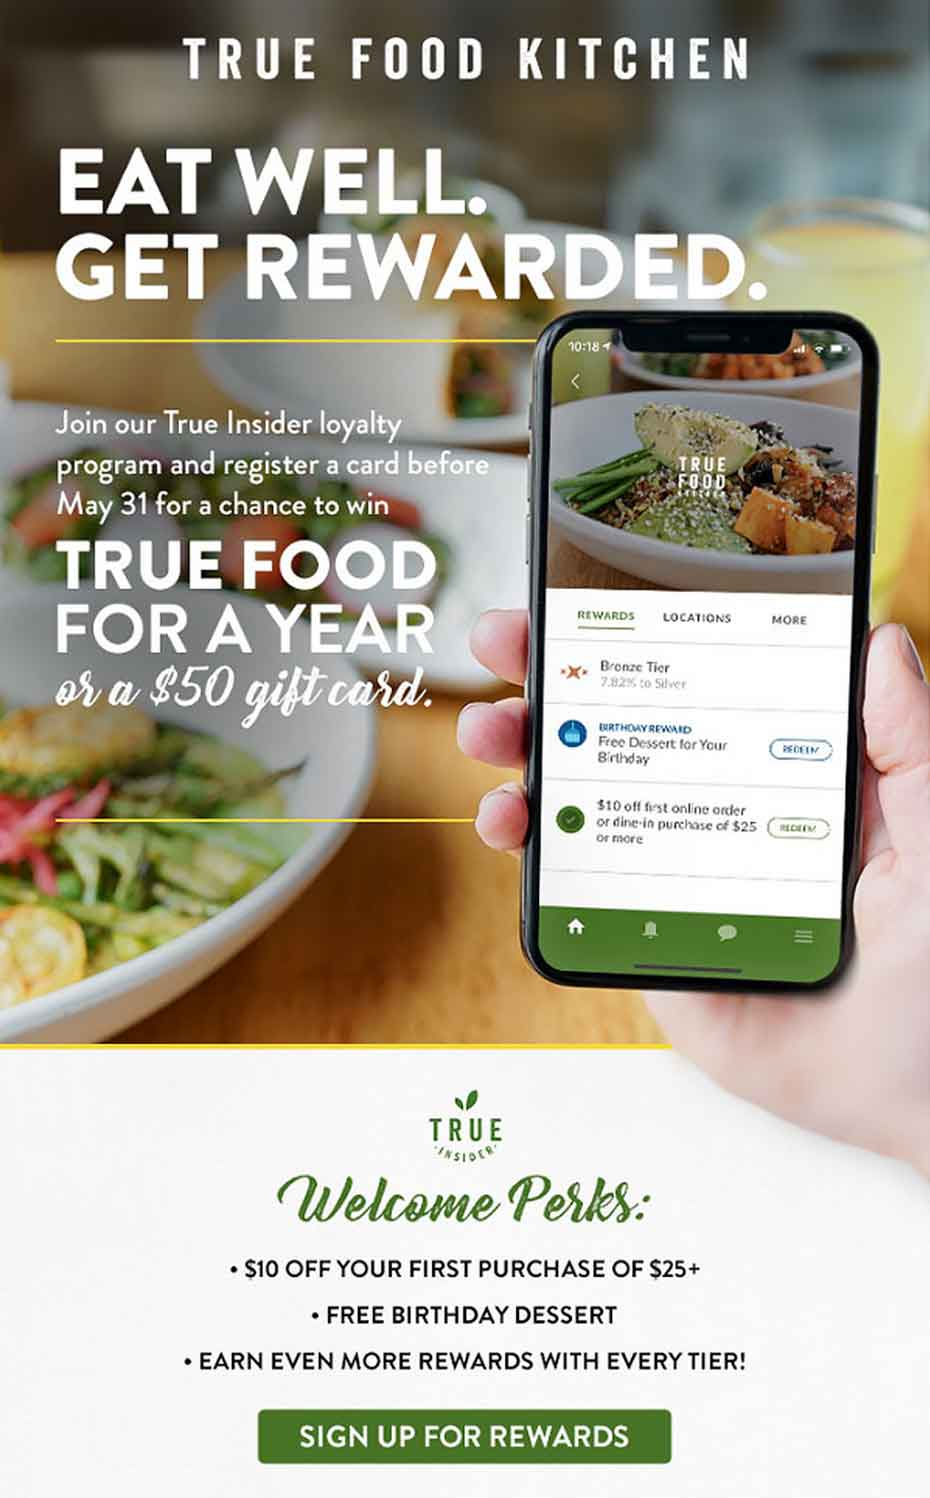 True Food Kitchen Partners With Thanx To Personalize